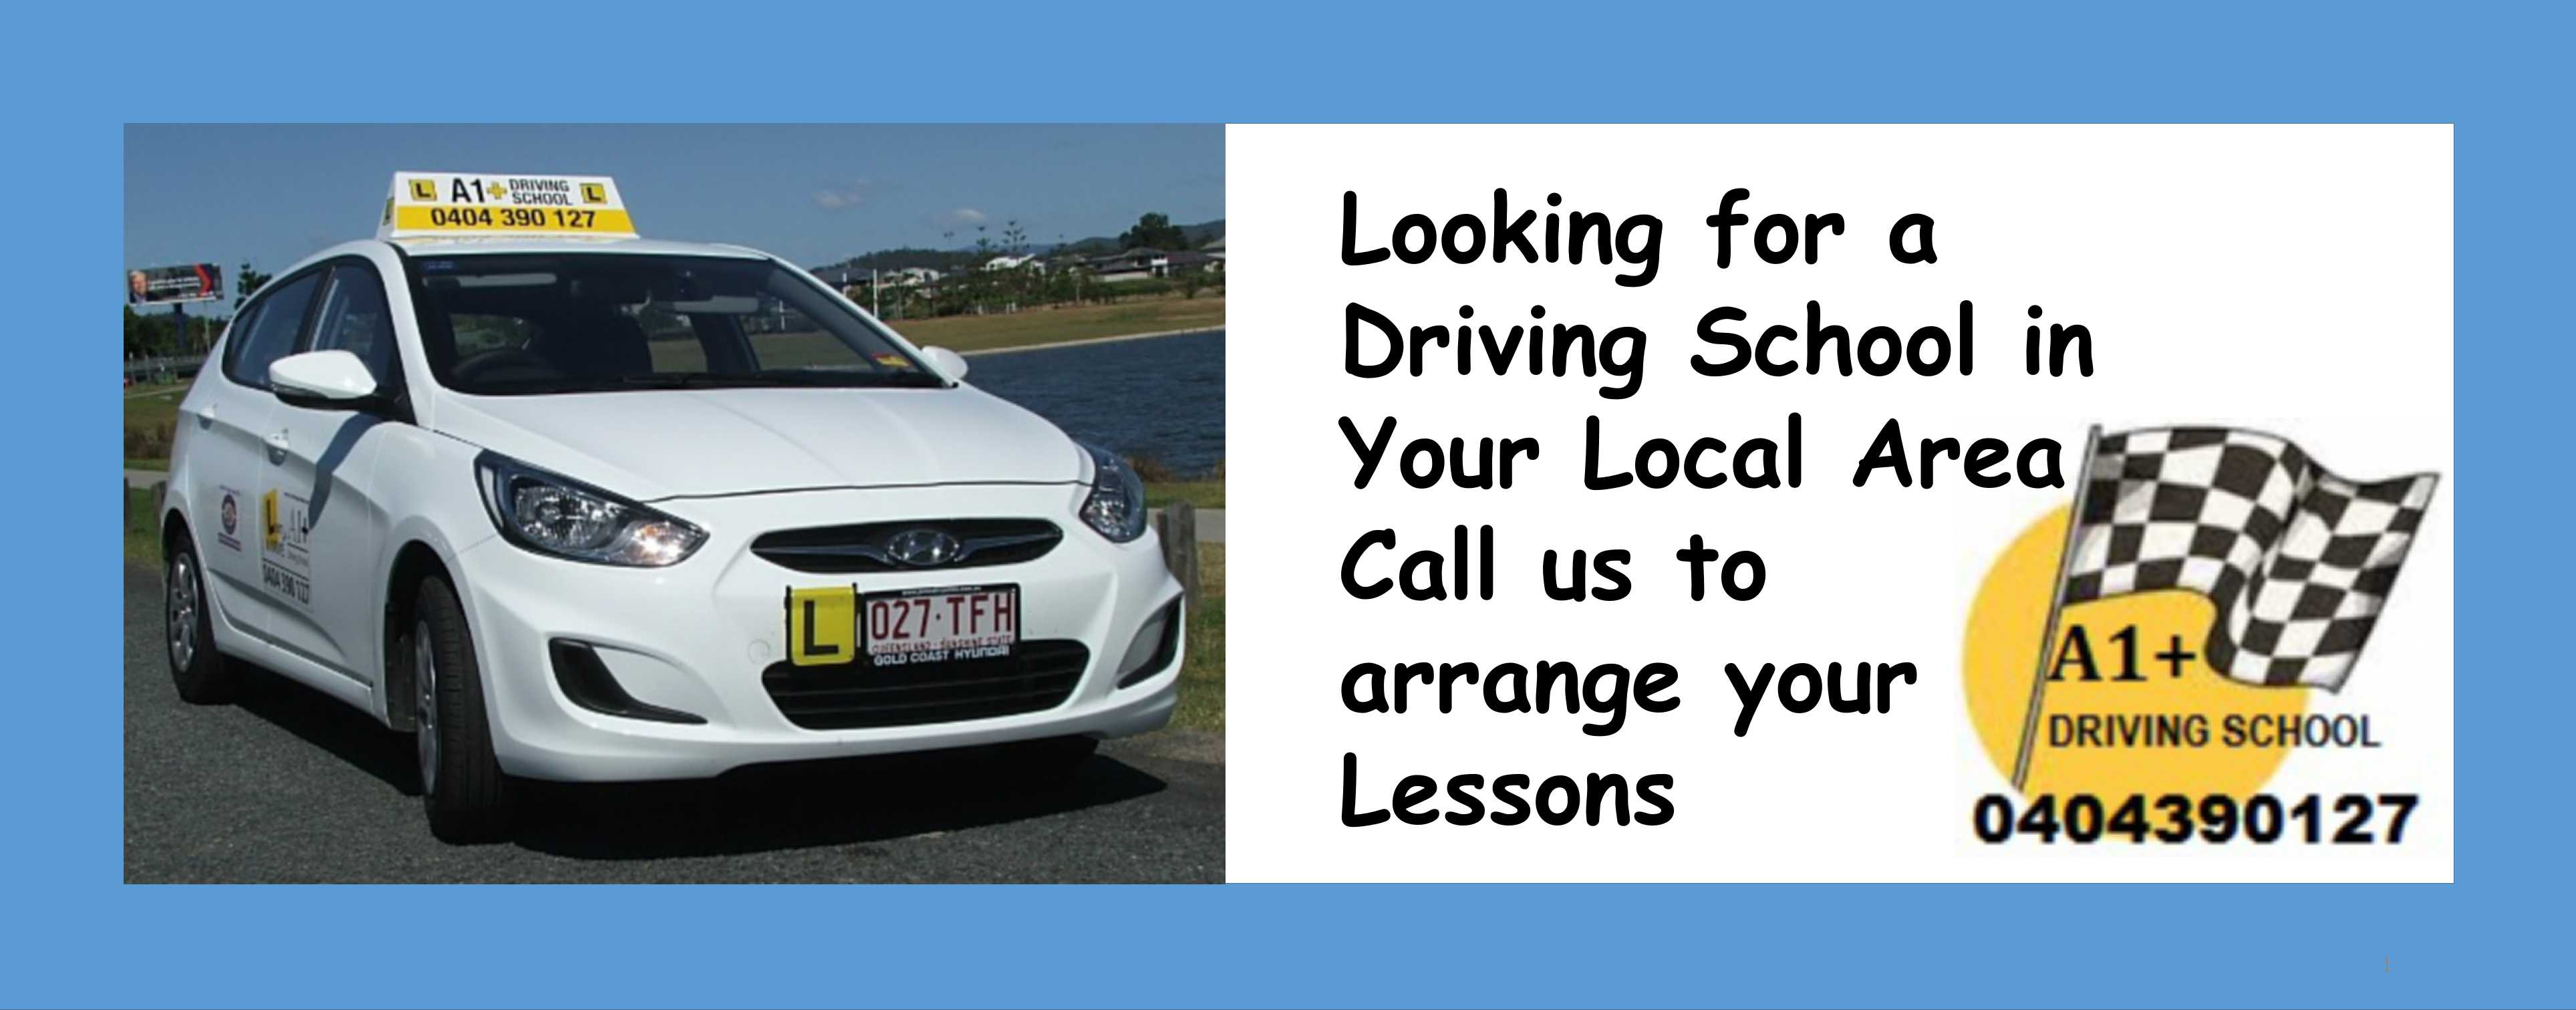 Have an instructor ride with you during a routine drive in your car to evaluate your driving patterns, identify your strengths/weaknesses and give you suggestions to help improve your skills. To schedule a Driver Skills Assessment, call us at , ext. or